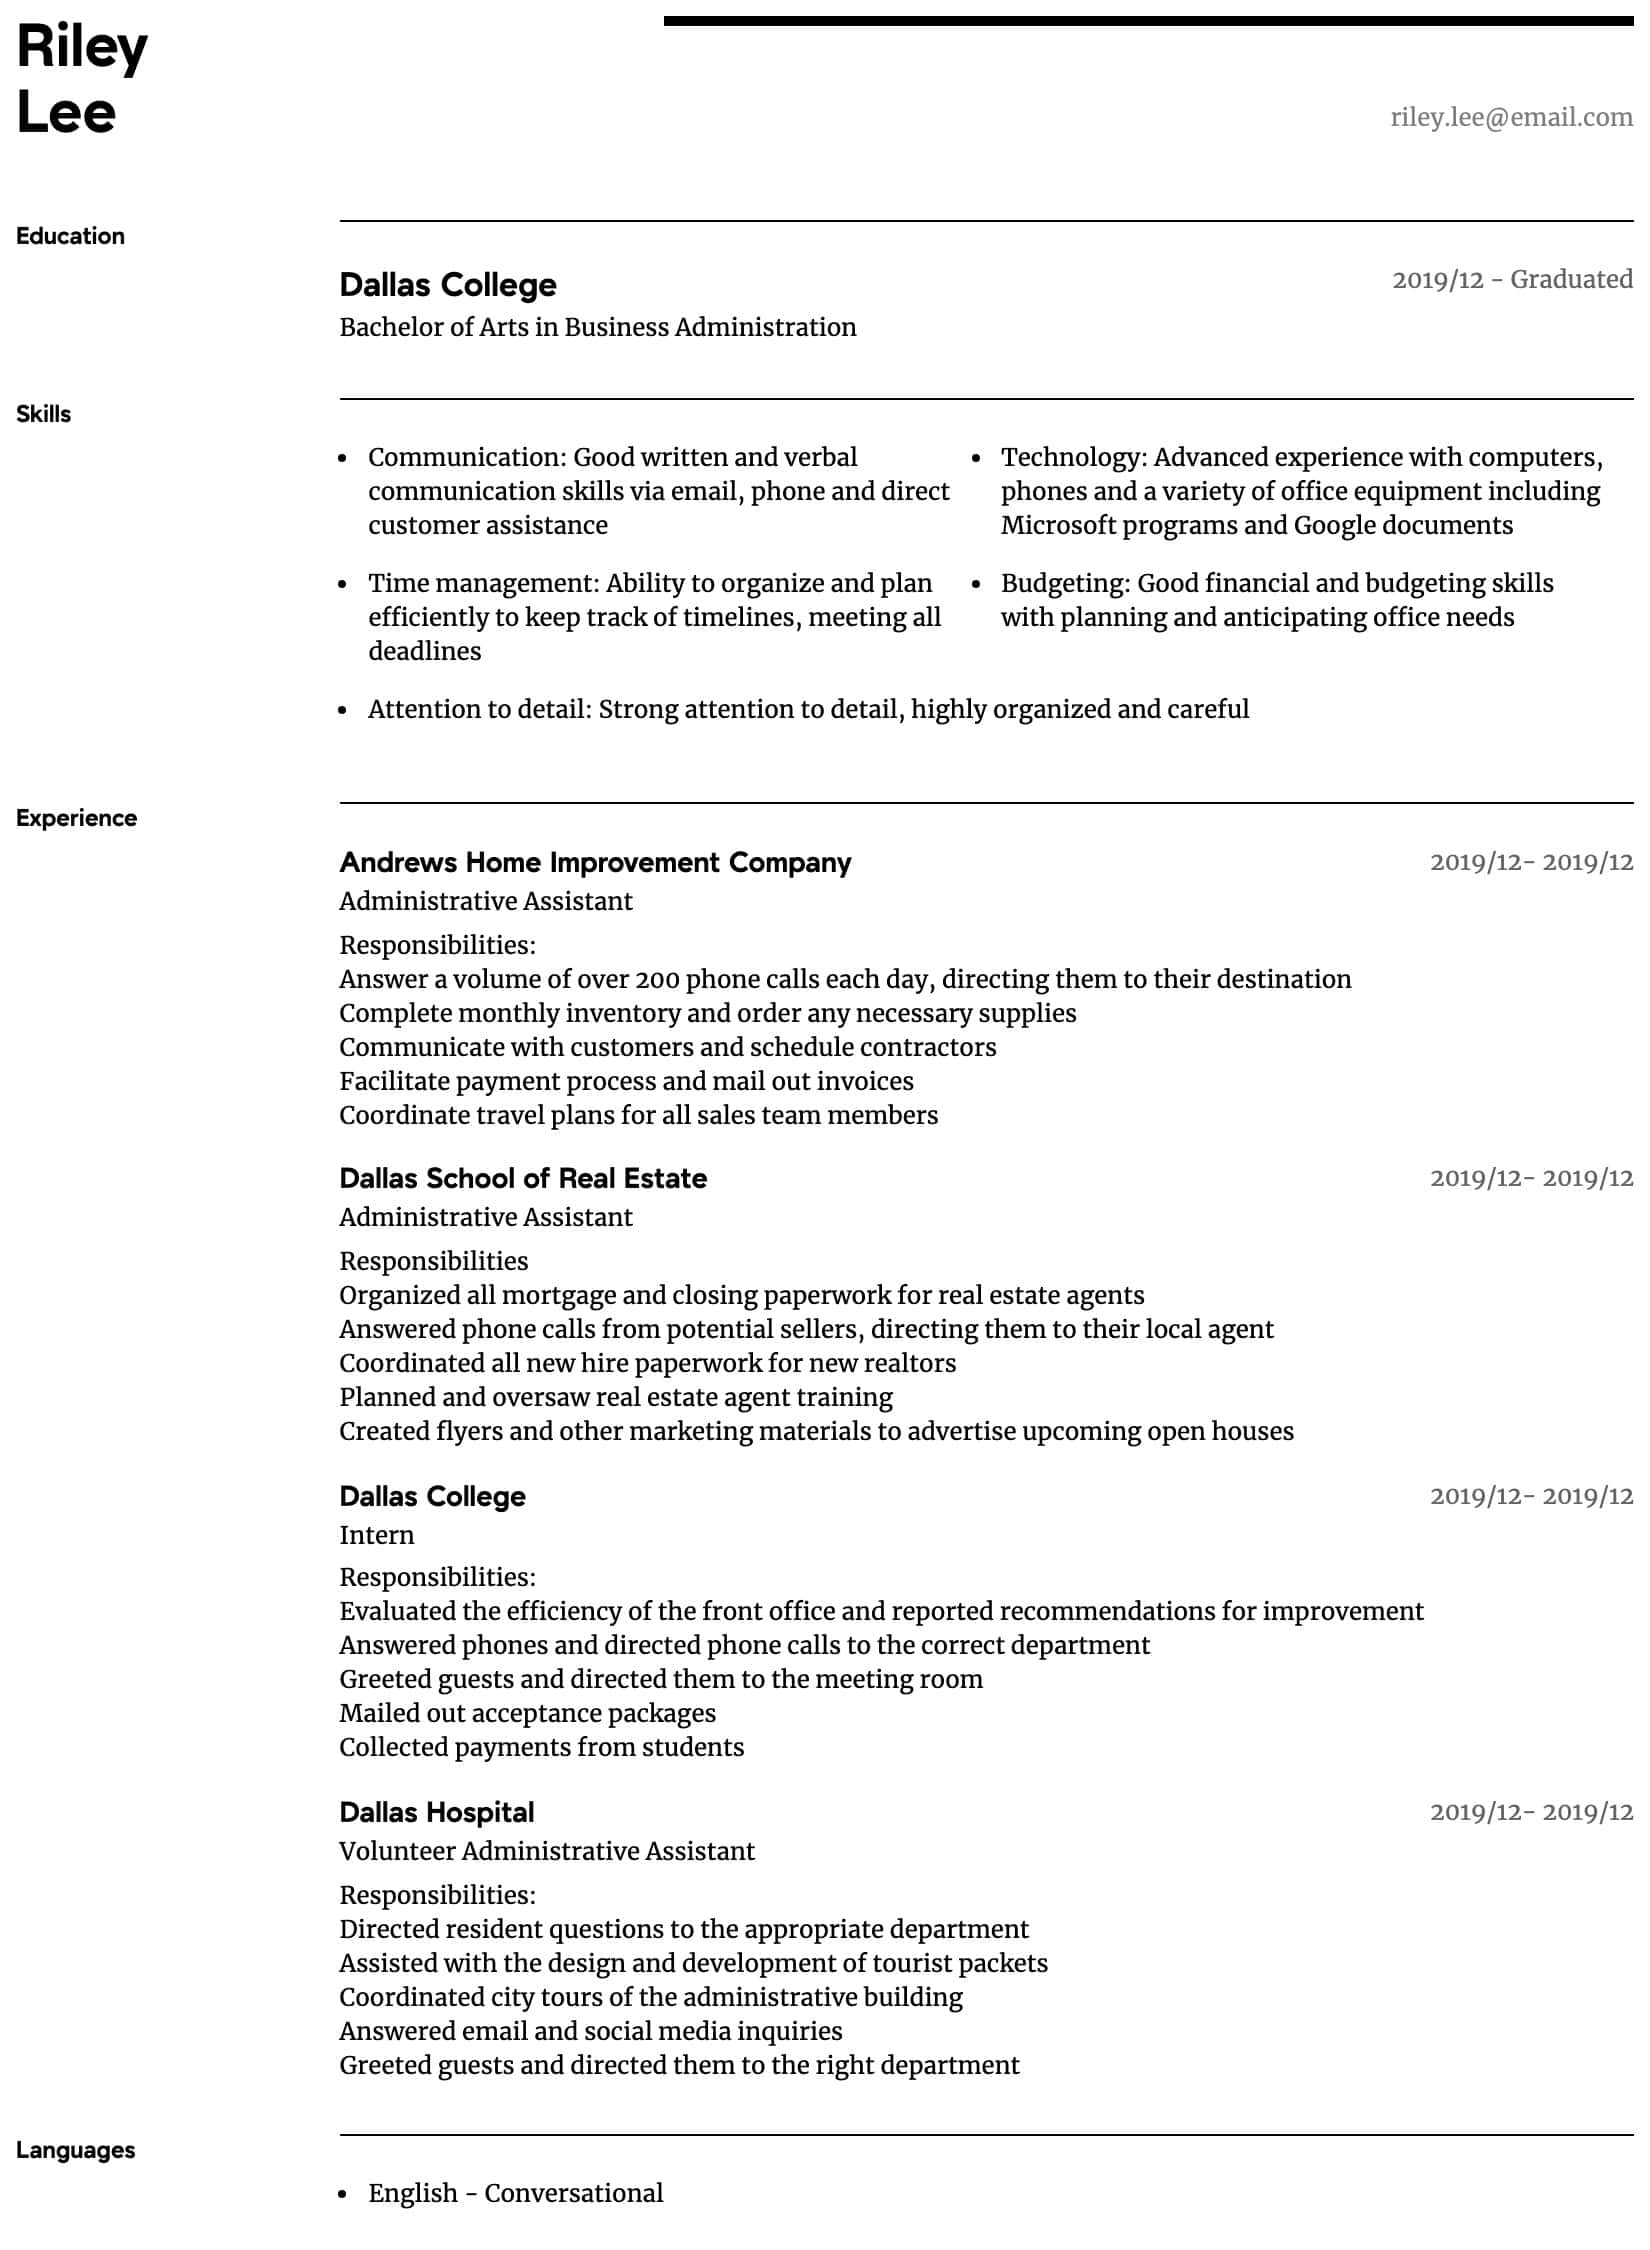 administrative assistant resume samples all experience levels responsibilities Resume Administrative Assistant Resume Responsibilities